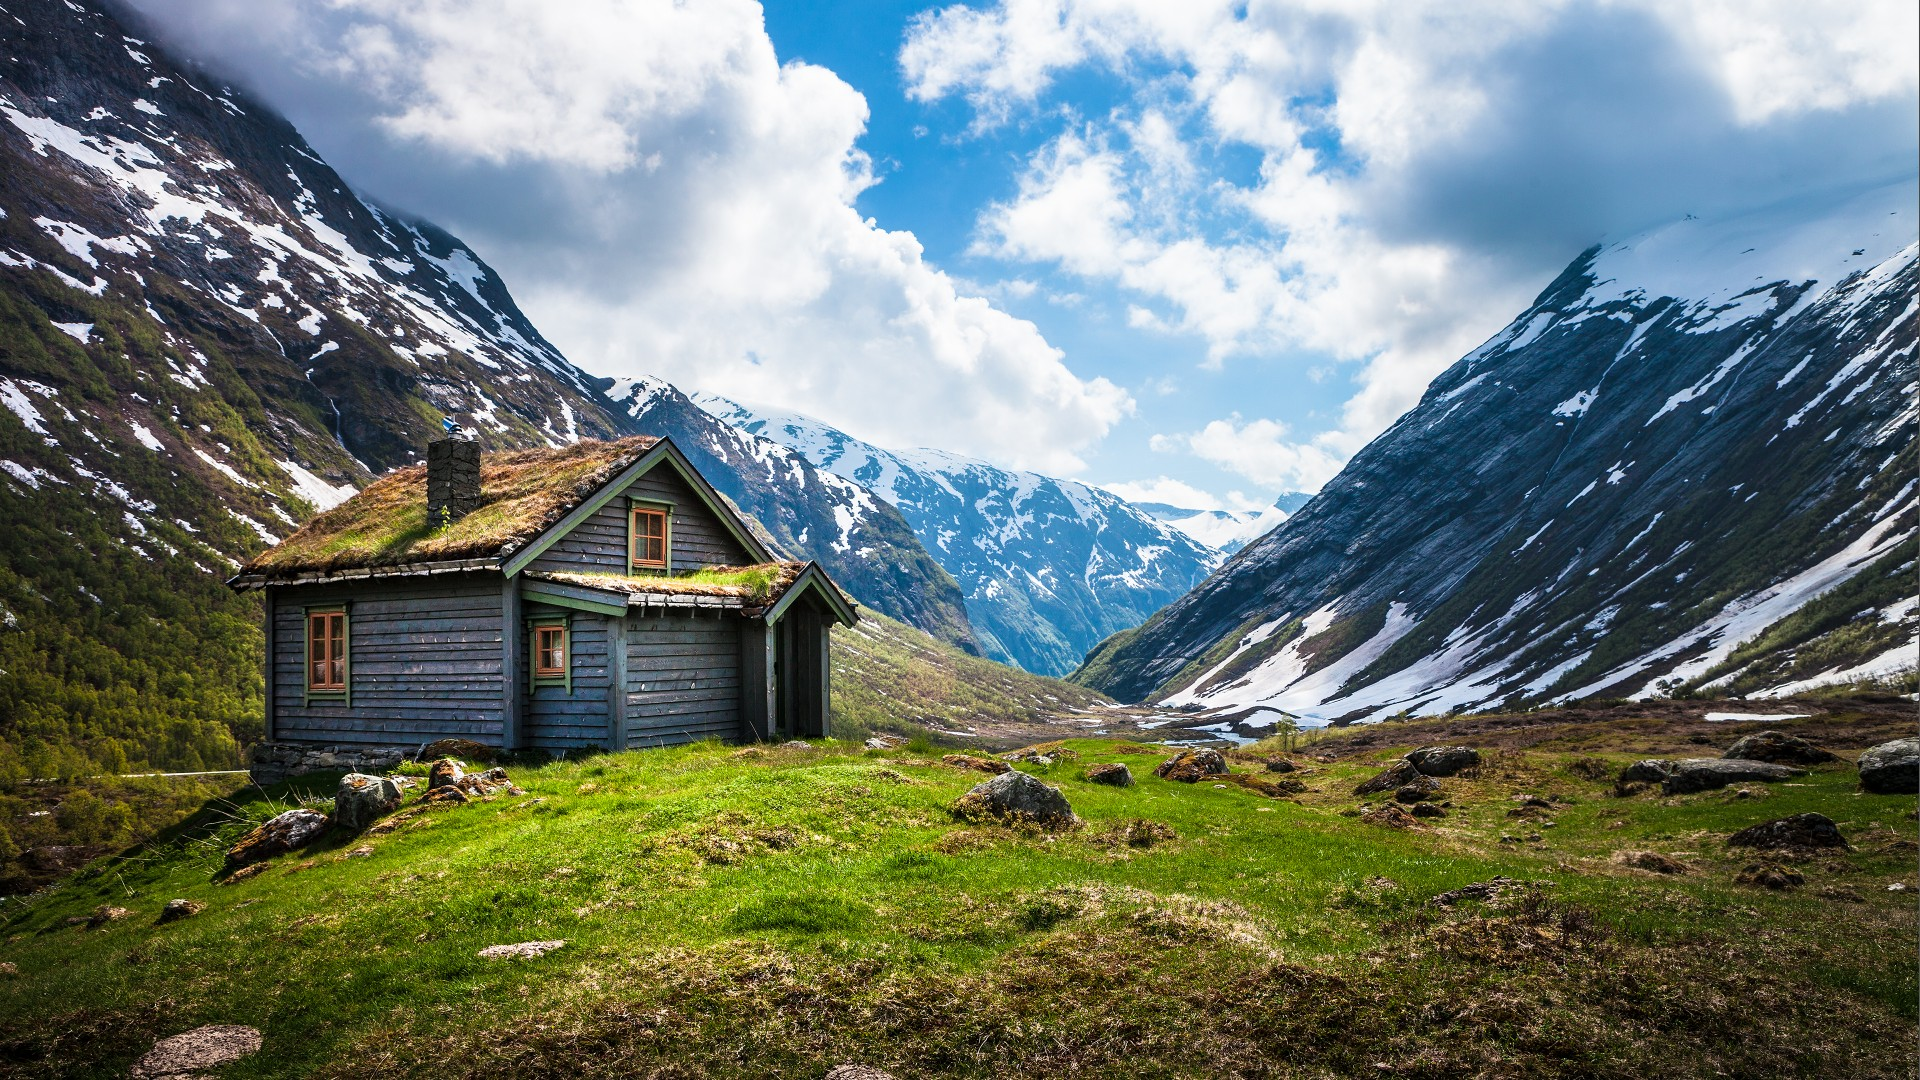 Norway, 4k, HD wallpaper, Geiranger, Stryn, mountain, clouds, house, sky, snow, green grass (horizontal)